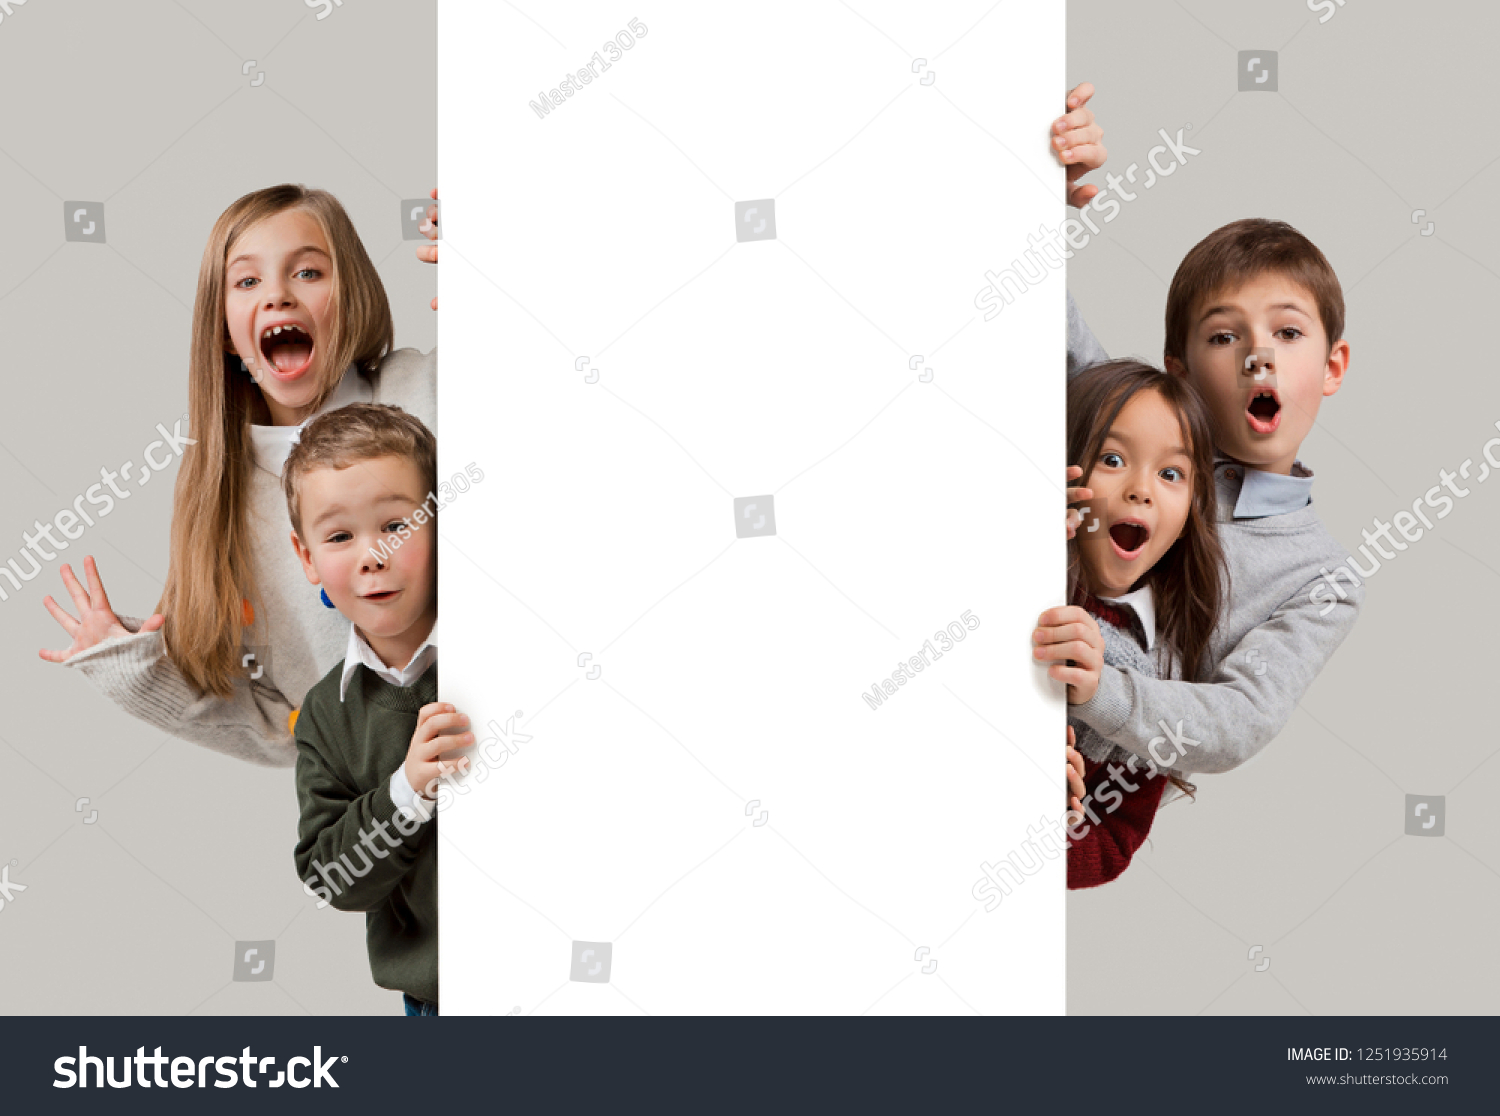 dee27e83a8 Banner with a surprised children peeking at the edge with copyspace. The  portrait of cute